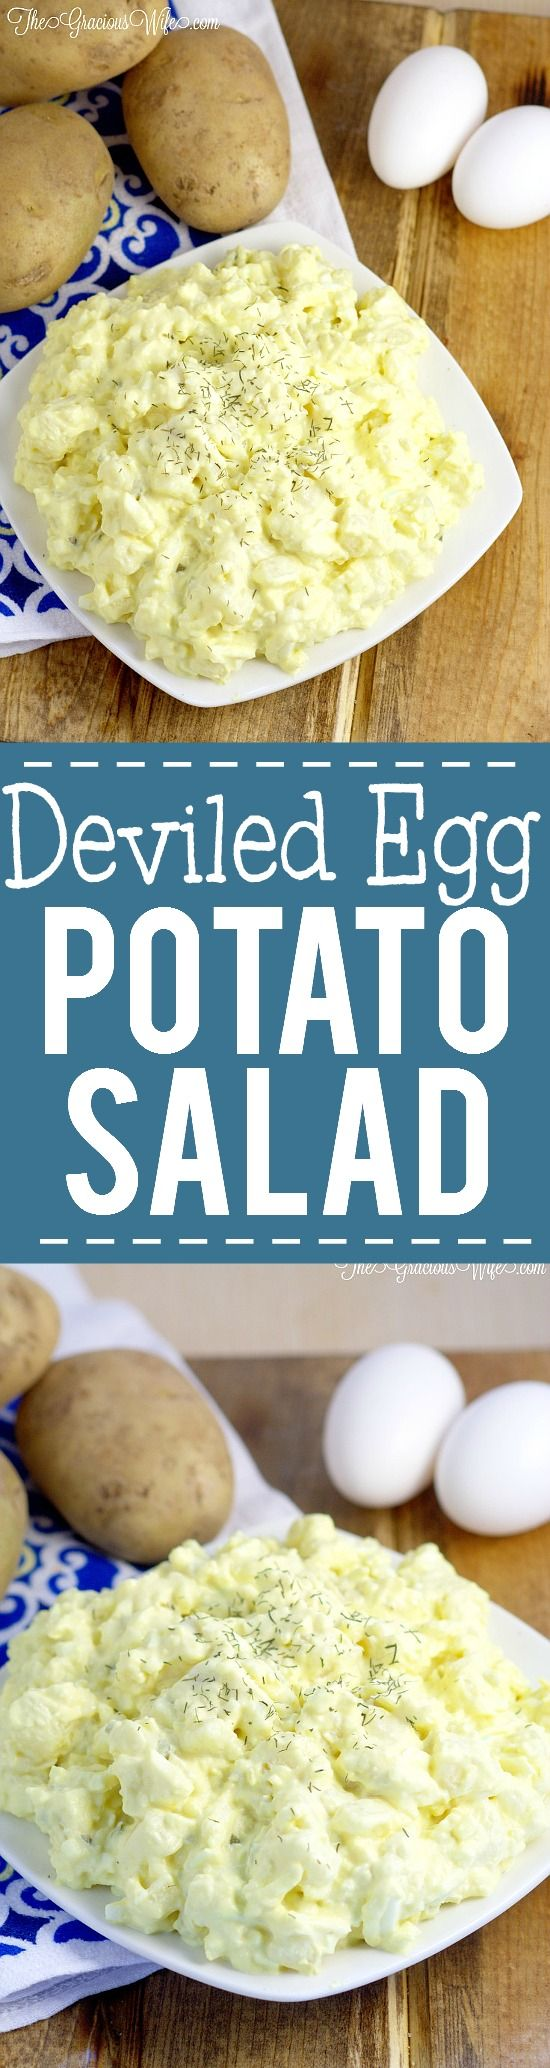 85 best images about salads and dressings on pinterest for How to make deviled egg potato salad